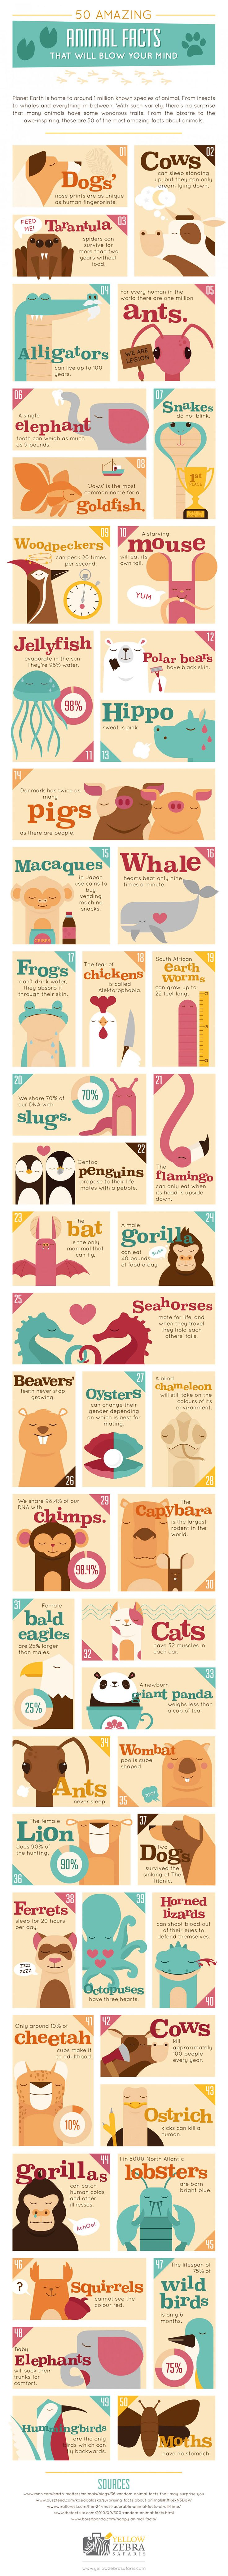 50 Interesting Animal Facts Infographic. Topic: pet, dog, cat